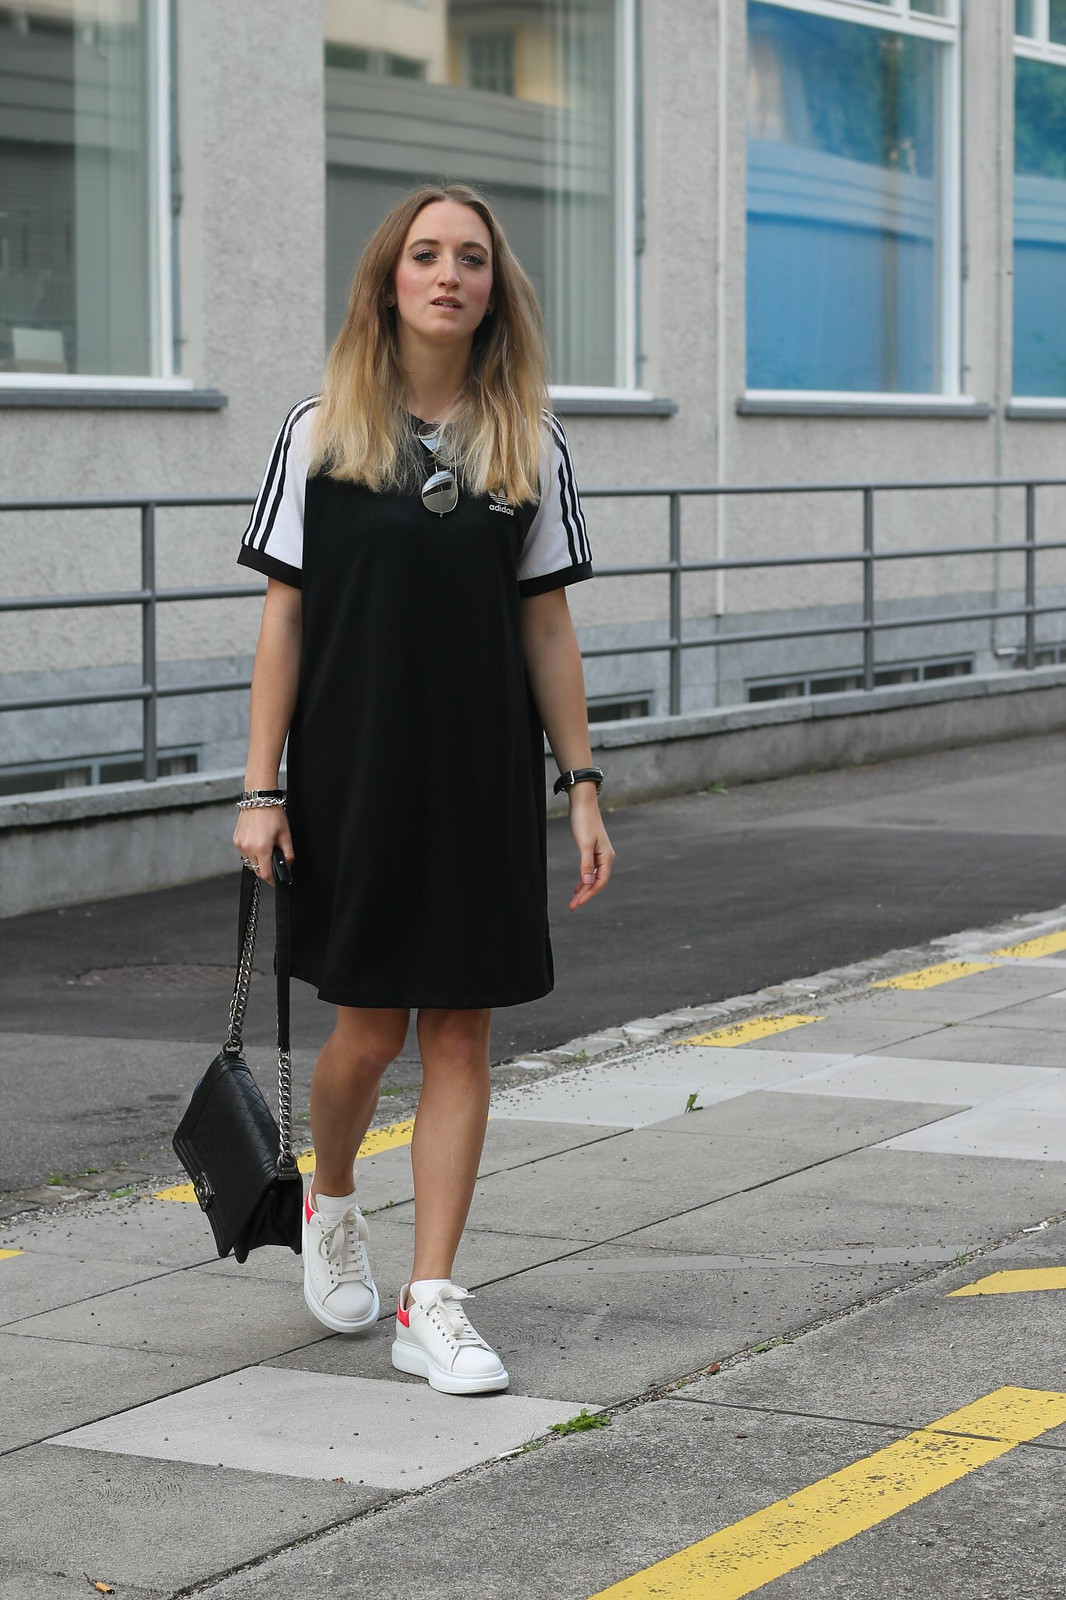 adidas-dress-and-alexander-mc-queen-sneaker-whole-look-wiebkembg